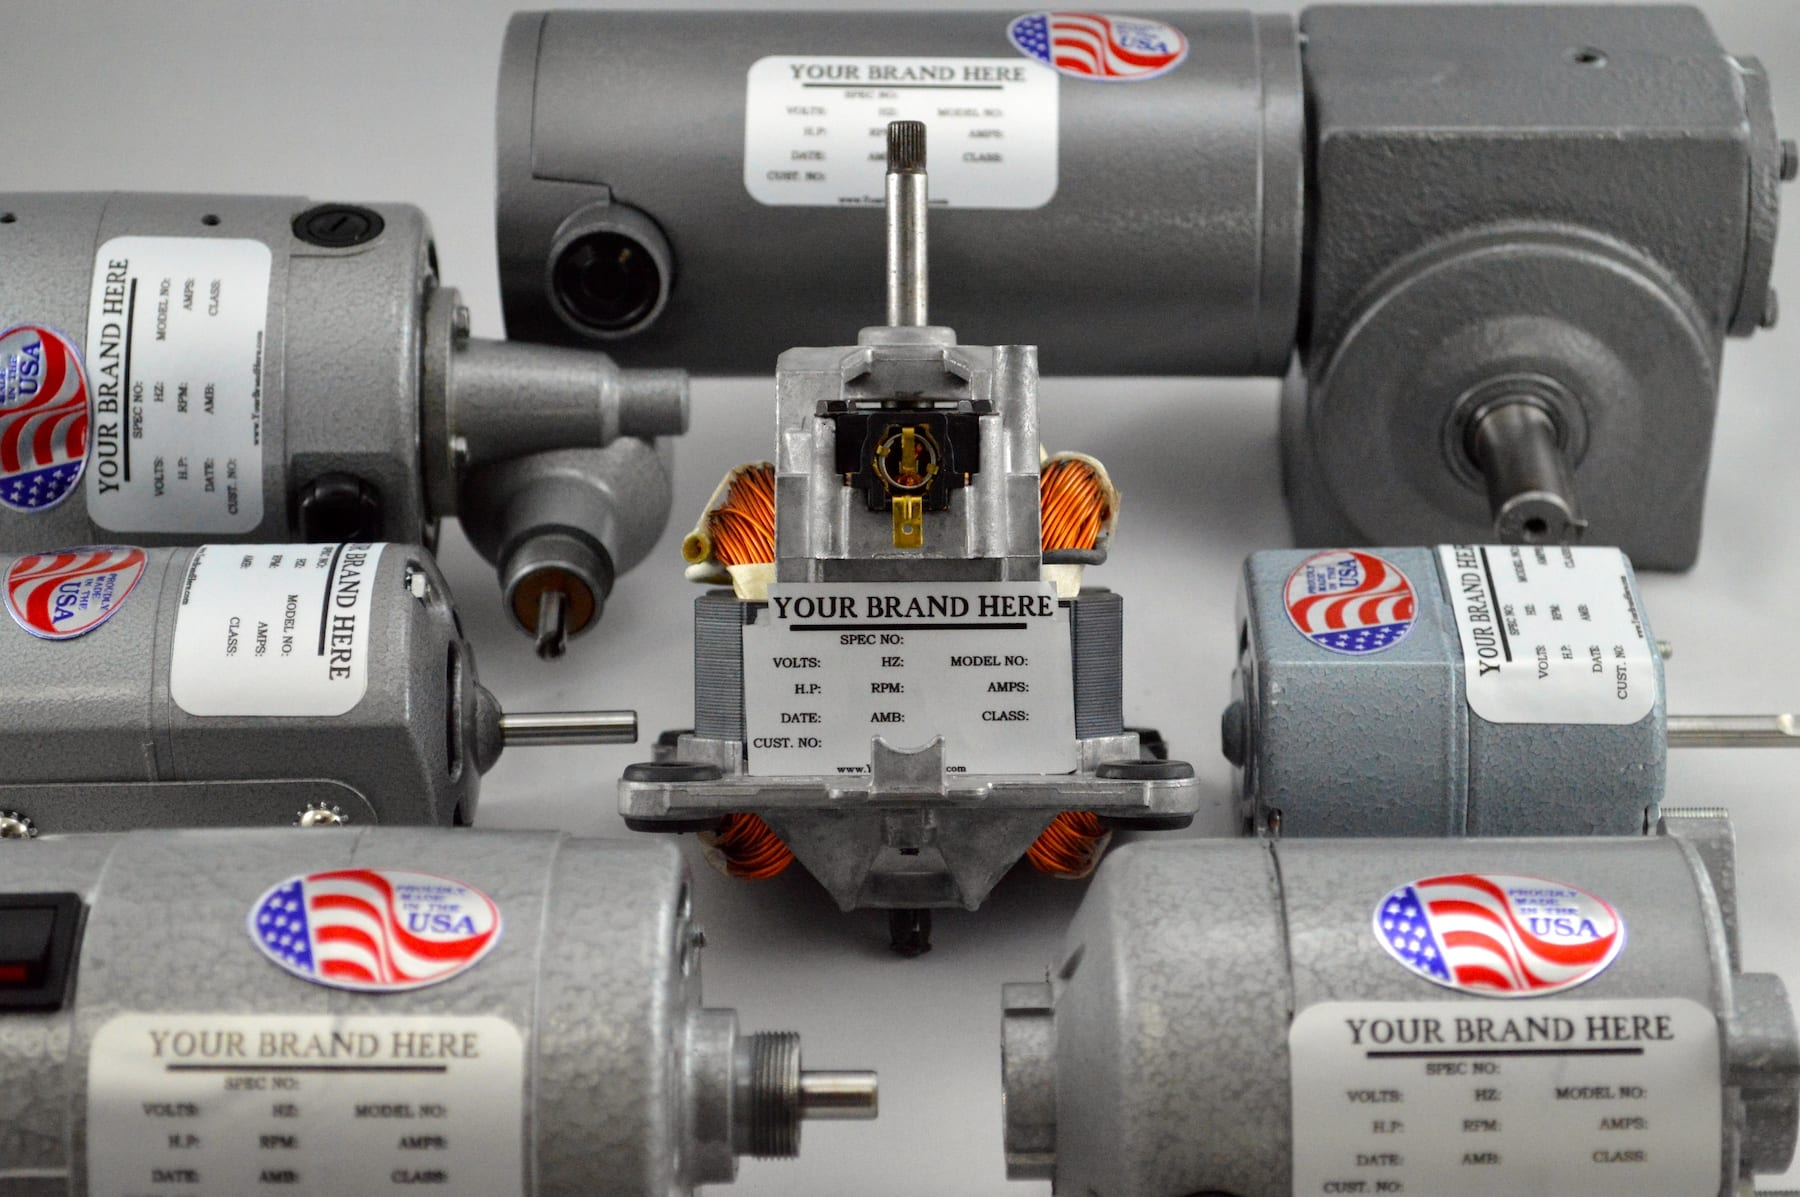 Motors that can be white labeled for your brand